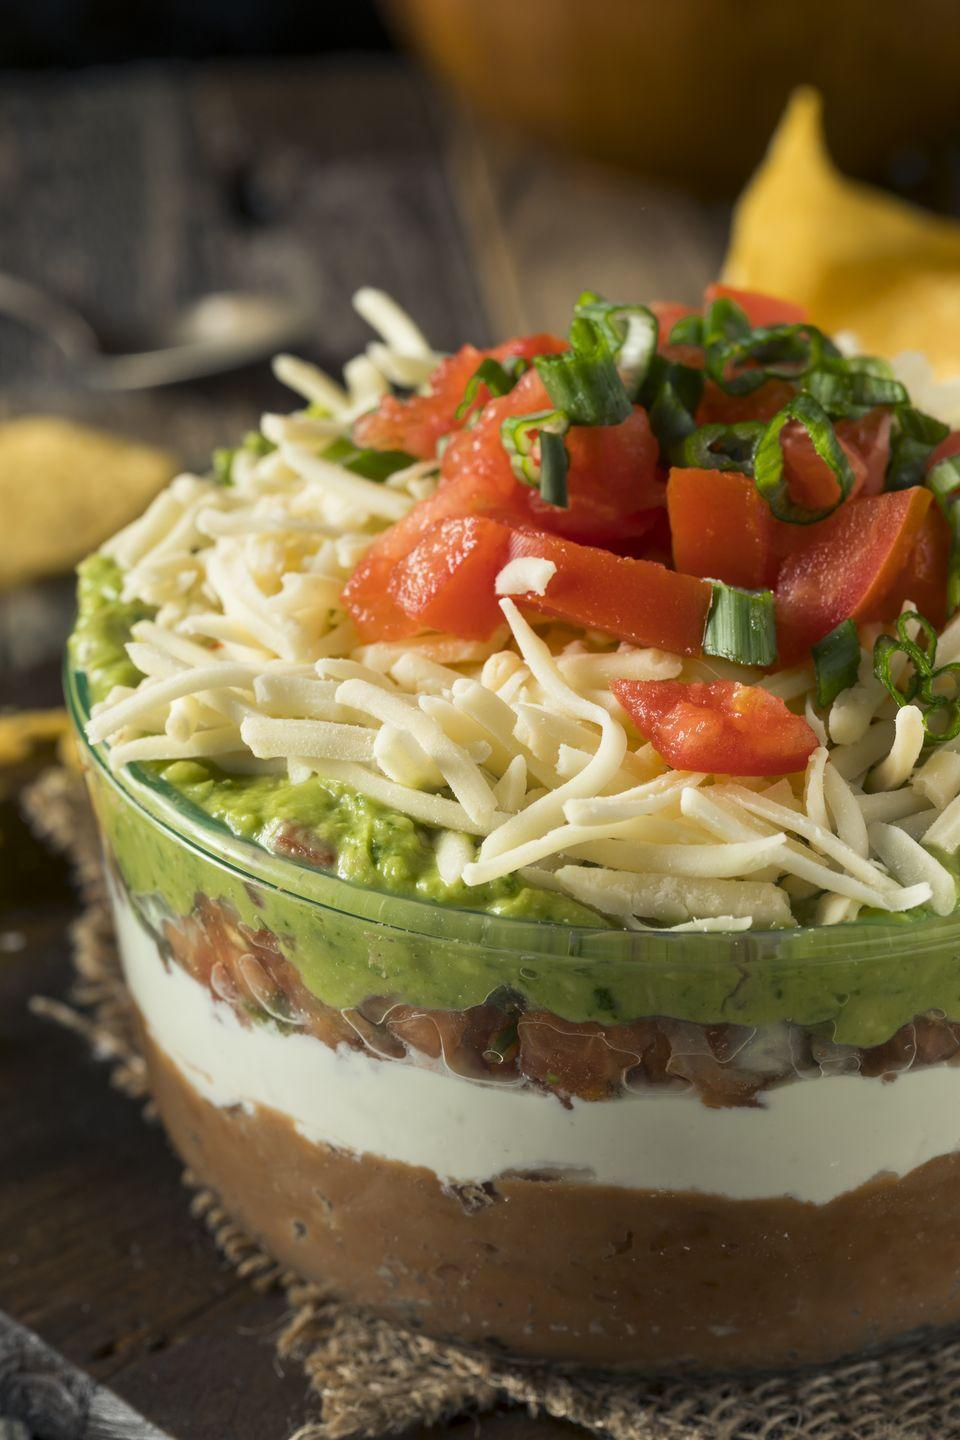 "<p>At only 100 calories a serving, here's a dip you can feel good about diving into.</p><p><a href=""https://www.goodhousekeeping.com/food-recipes/a11044/seven-layer-dip-recipe-ghk0911/"" rel=""nofollow noopener"" target=""_blank"" data-ylk=""slk:Get the recipe for Healthy Seven Layer Dip »"" class=""link rapid-noclick-resp""><em>Get the recipe for Healthy Seven Layer Dip »</em></a></p>"